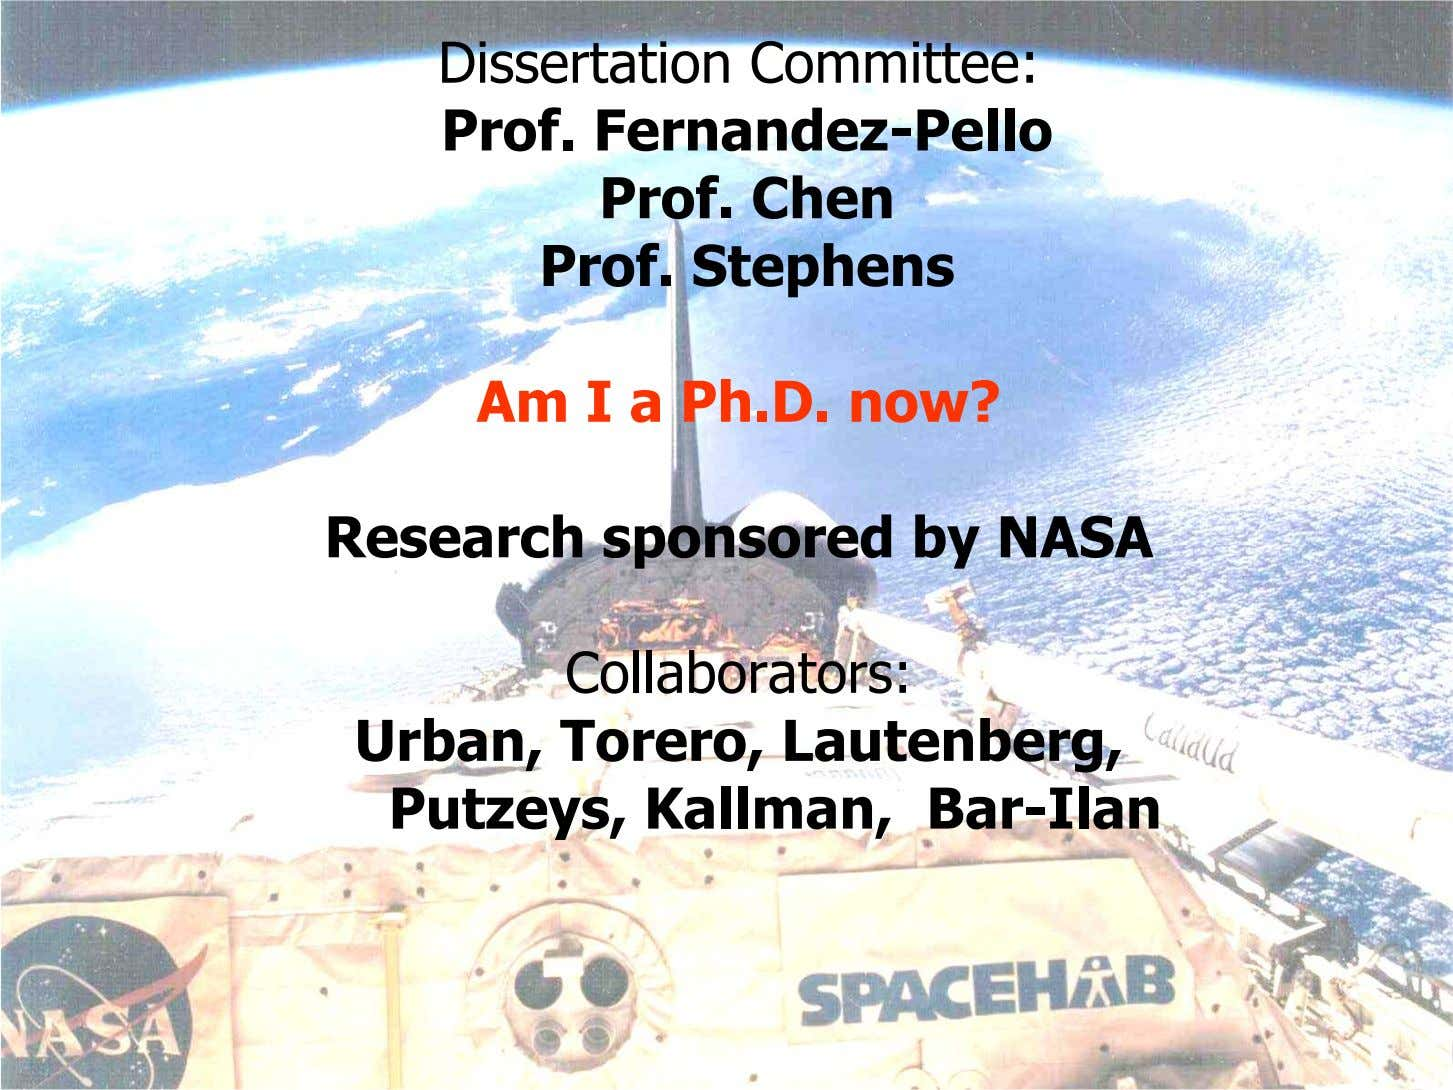 Dissertation Committee: Prof. Fernandez-Pello Prof. Chen Prof. Stephens Am I a Ph.D. now? Research sponsored